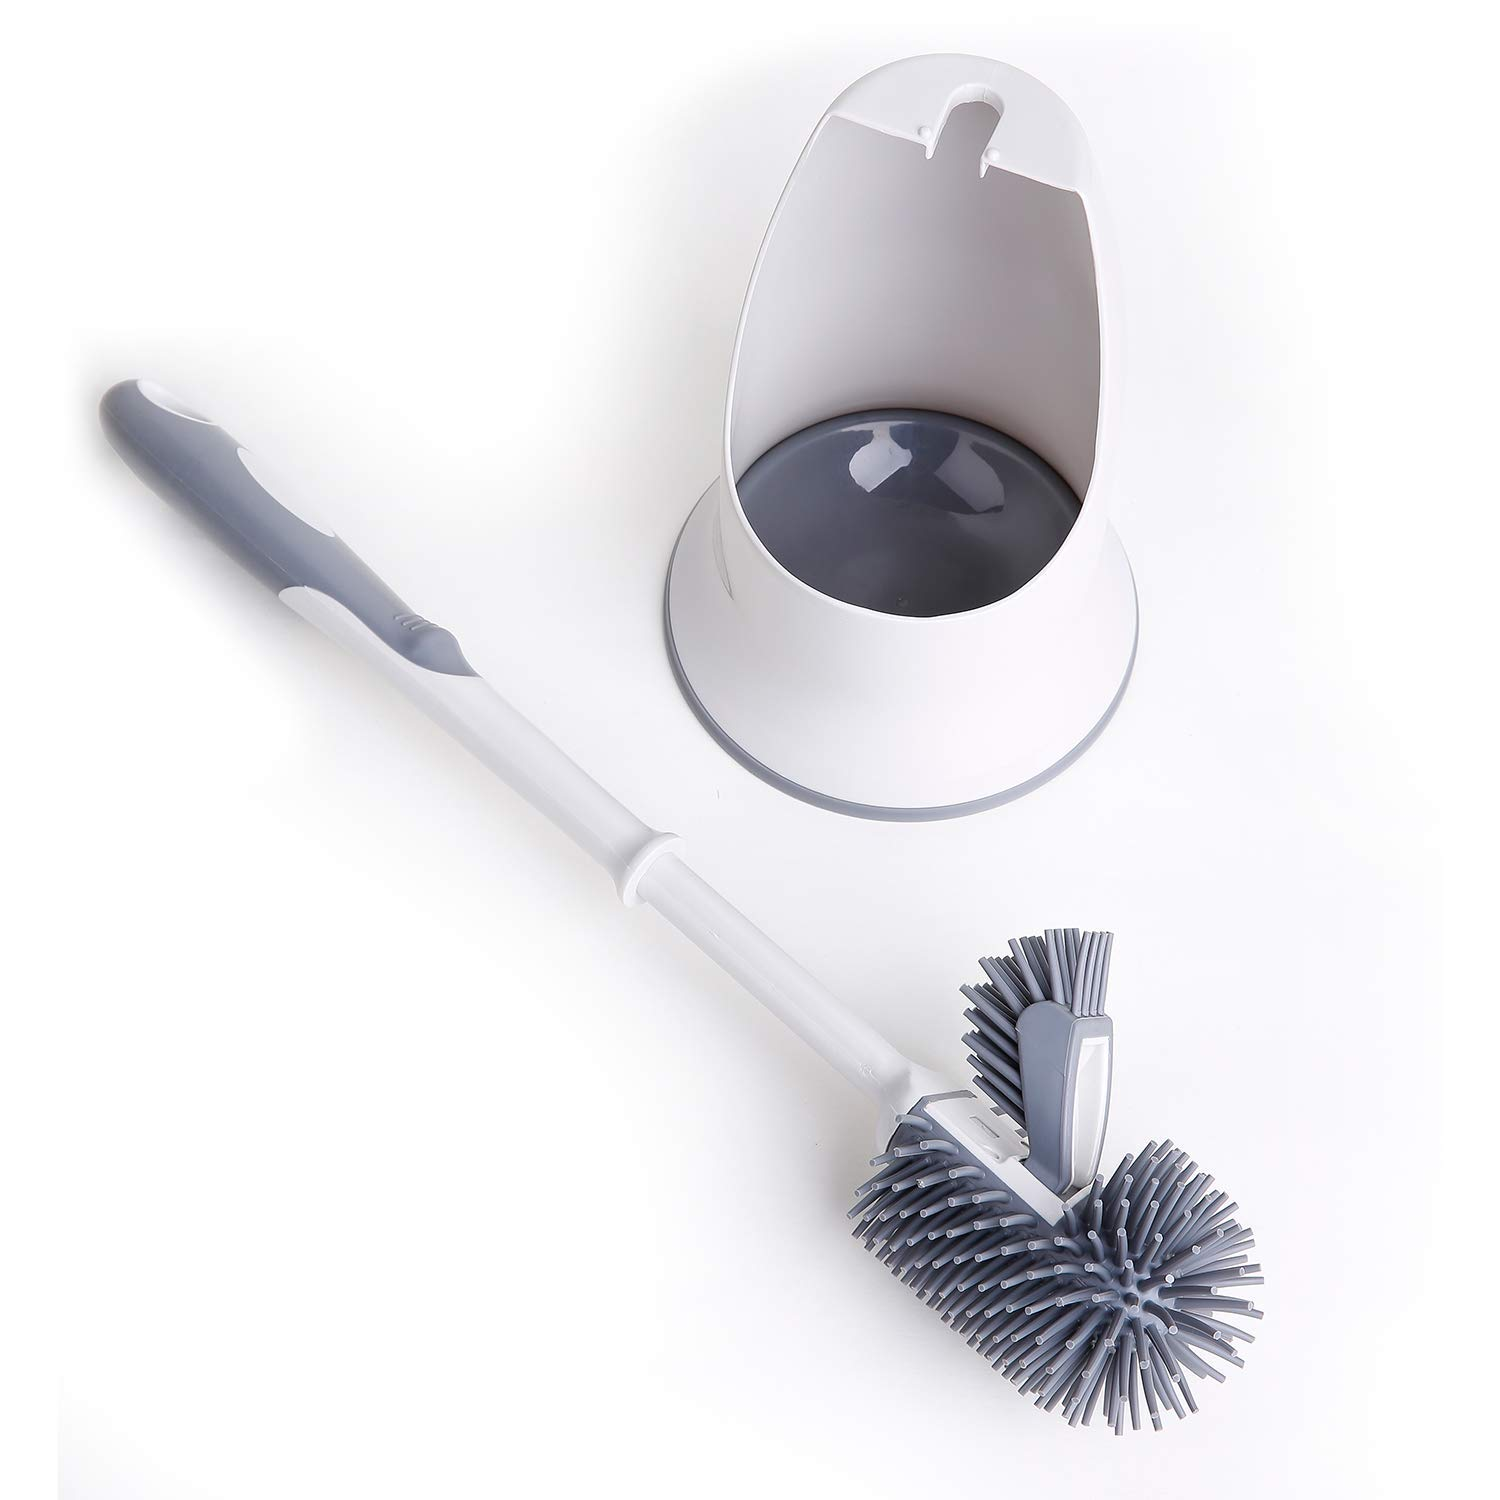 TreeLen Toilet Brush and Holder,Toilet Bowl Cleaning Brush Set,Under Rim Lip Brush and Storage Caddy for Bathroom by TreeLen